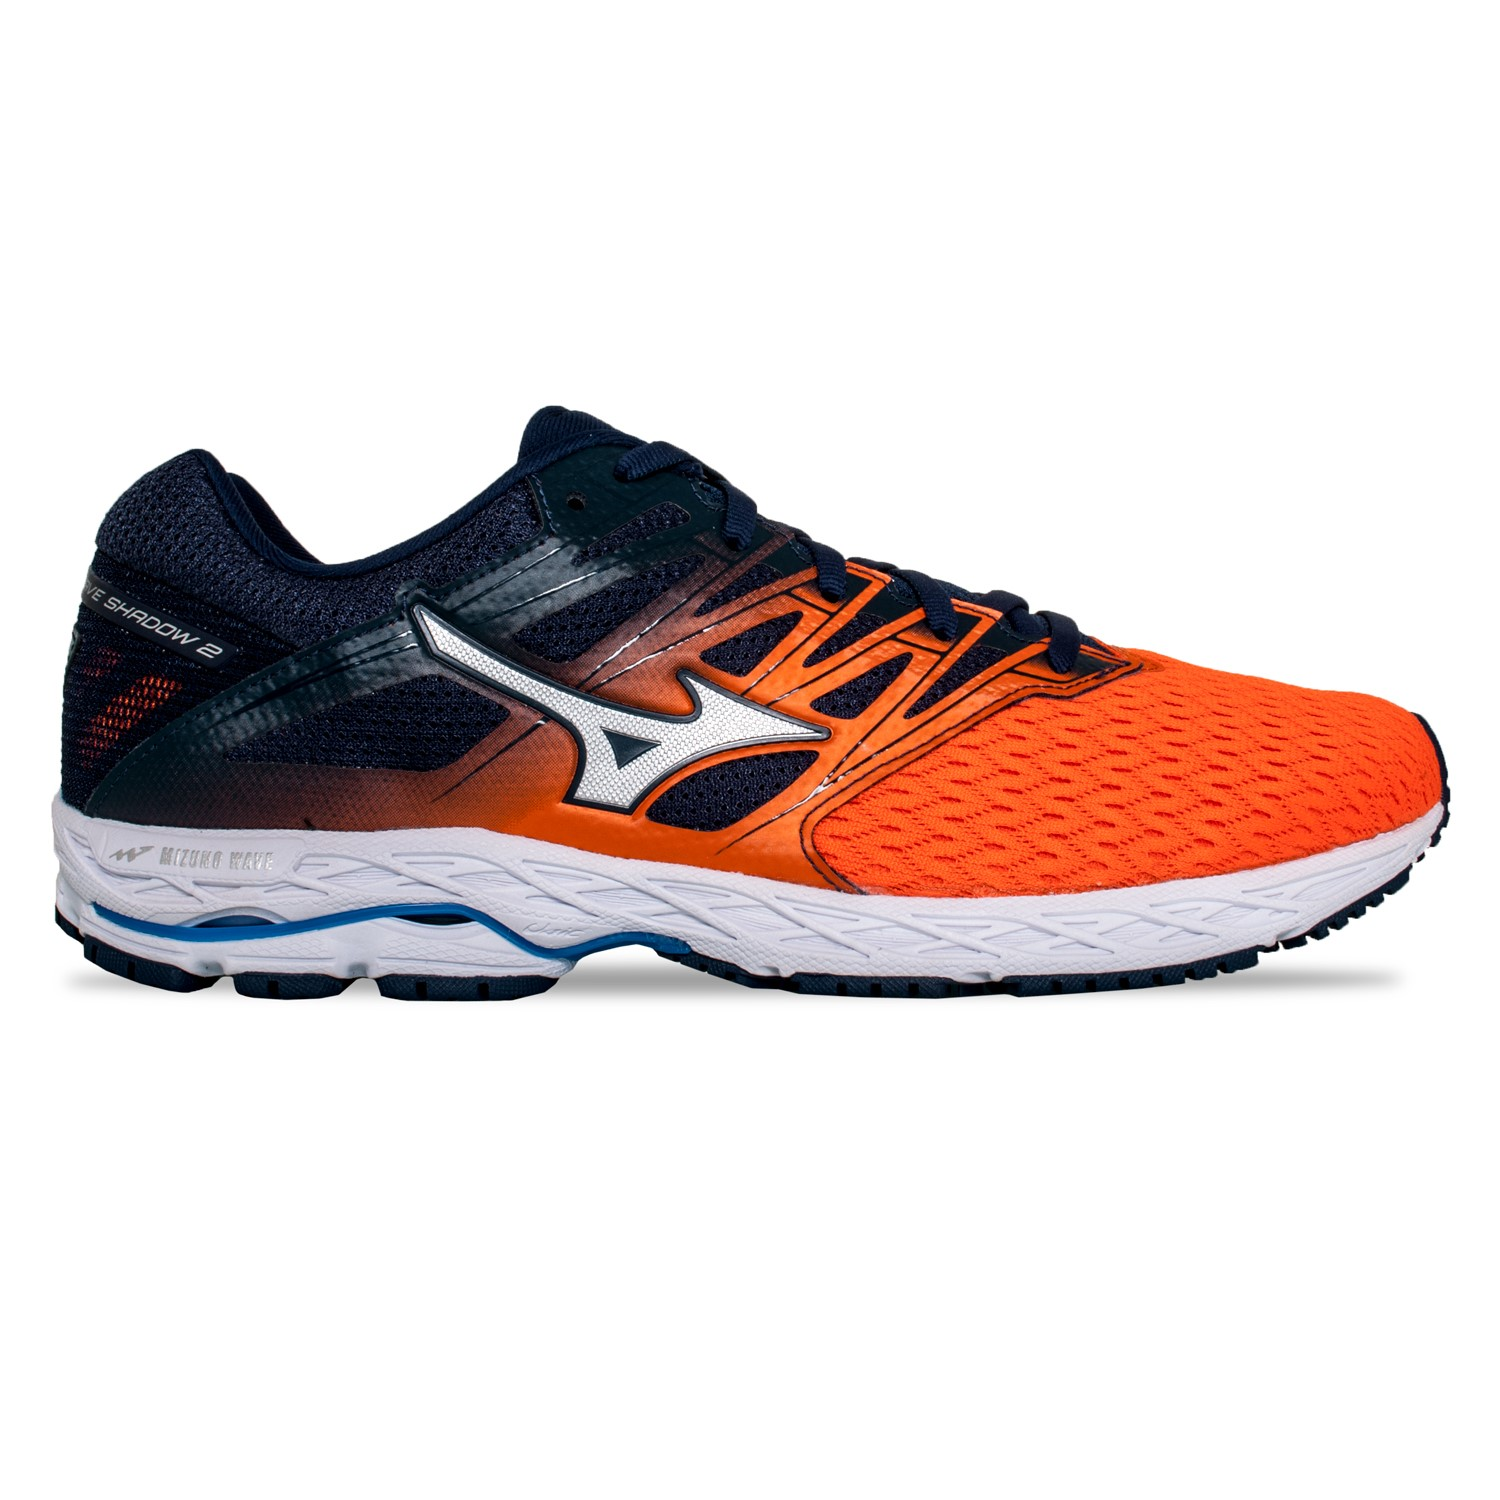 b2139d3330d Mizuno Wave Shadow 2 - Mens Running Shoes - Flame Silver Dress Blue ...